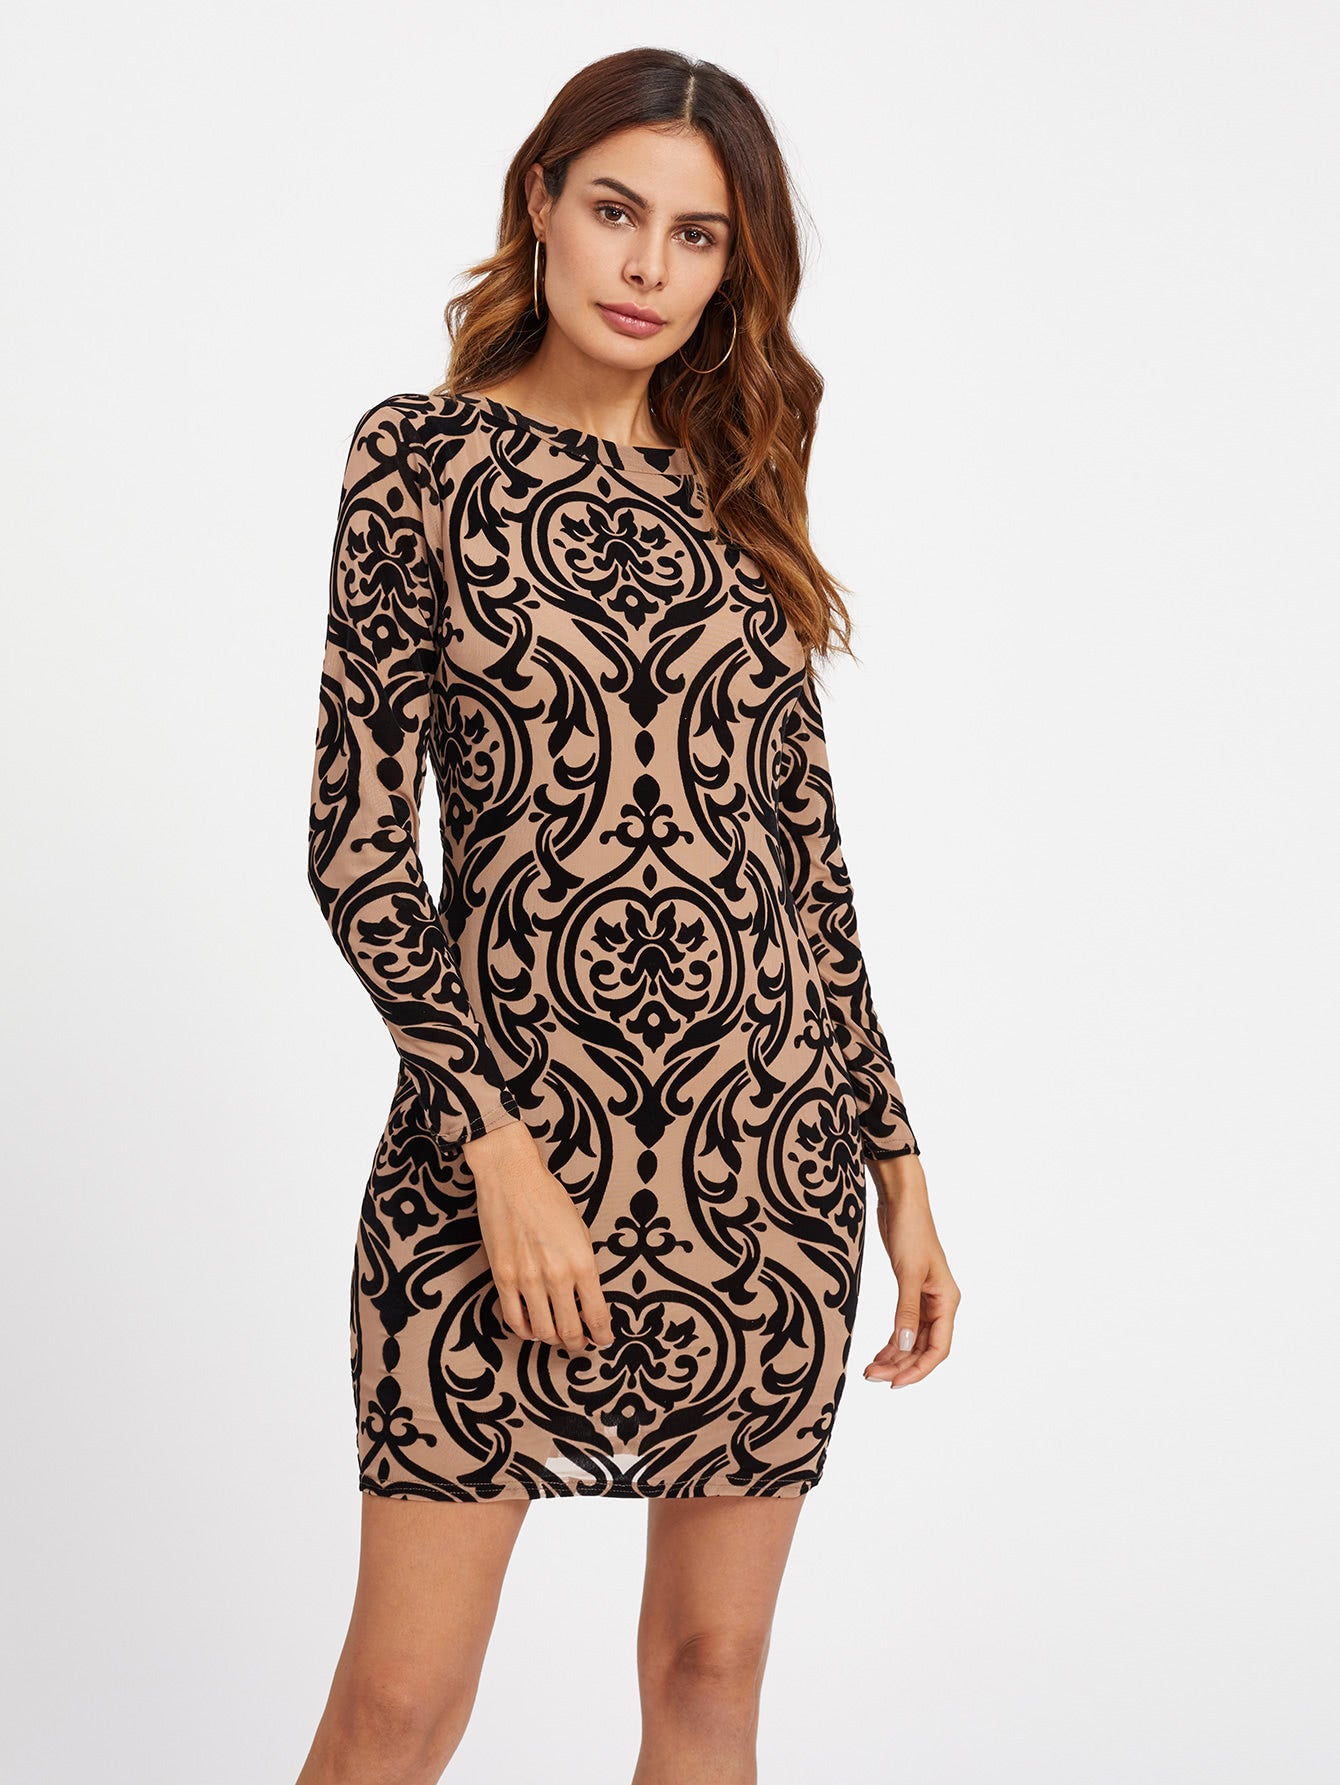 Damask Print Keyhole Back Bodycon Dress